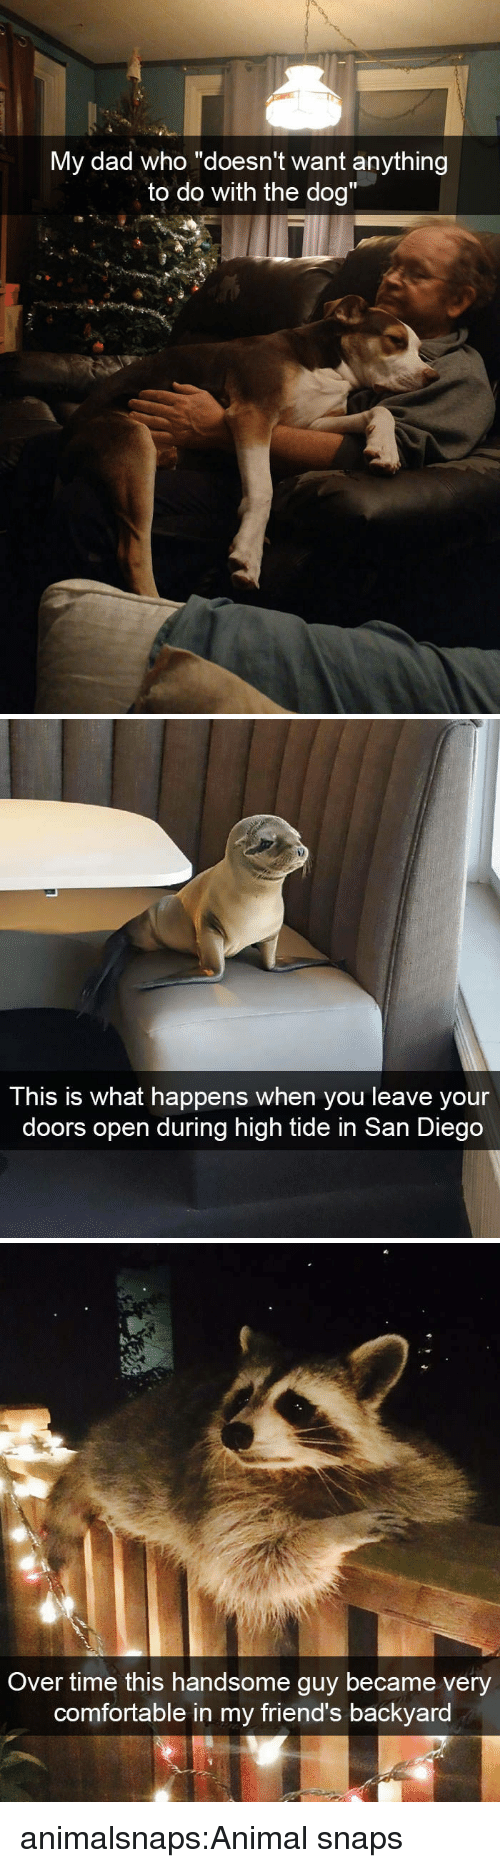 """Tide: y dad who """"doesn't want anythin  to do with the dog""""  M  g   This is what happens when you leave your  doors open during high tide in San Diego   Over time this handsome guy became very  comfortable in my friend's backyard animalsnaps:Animal snaps"""